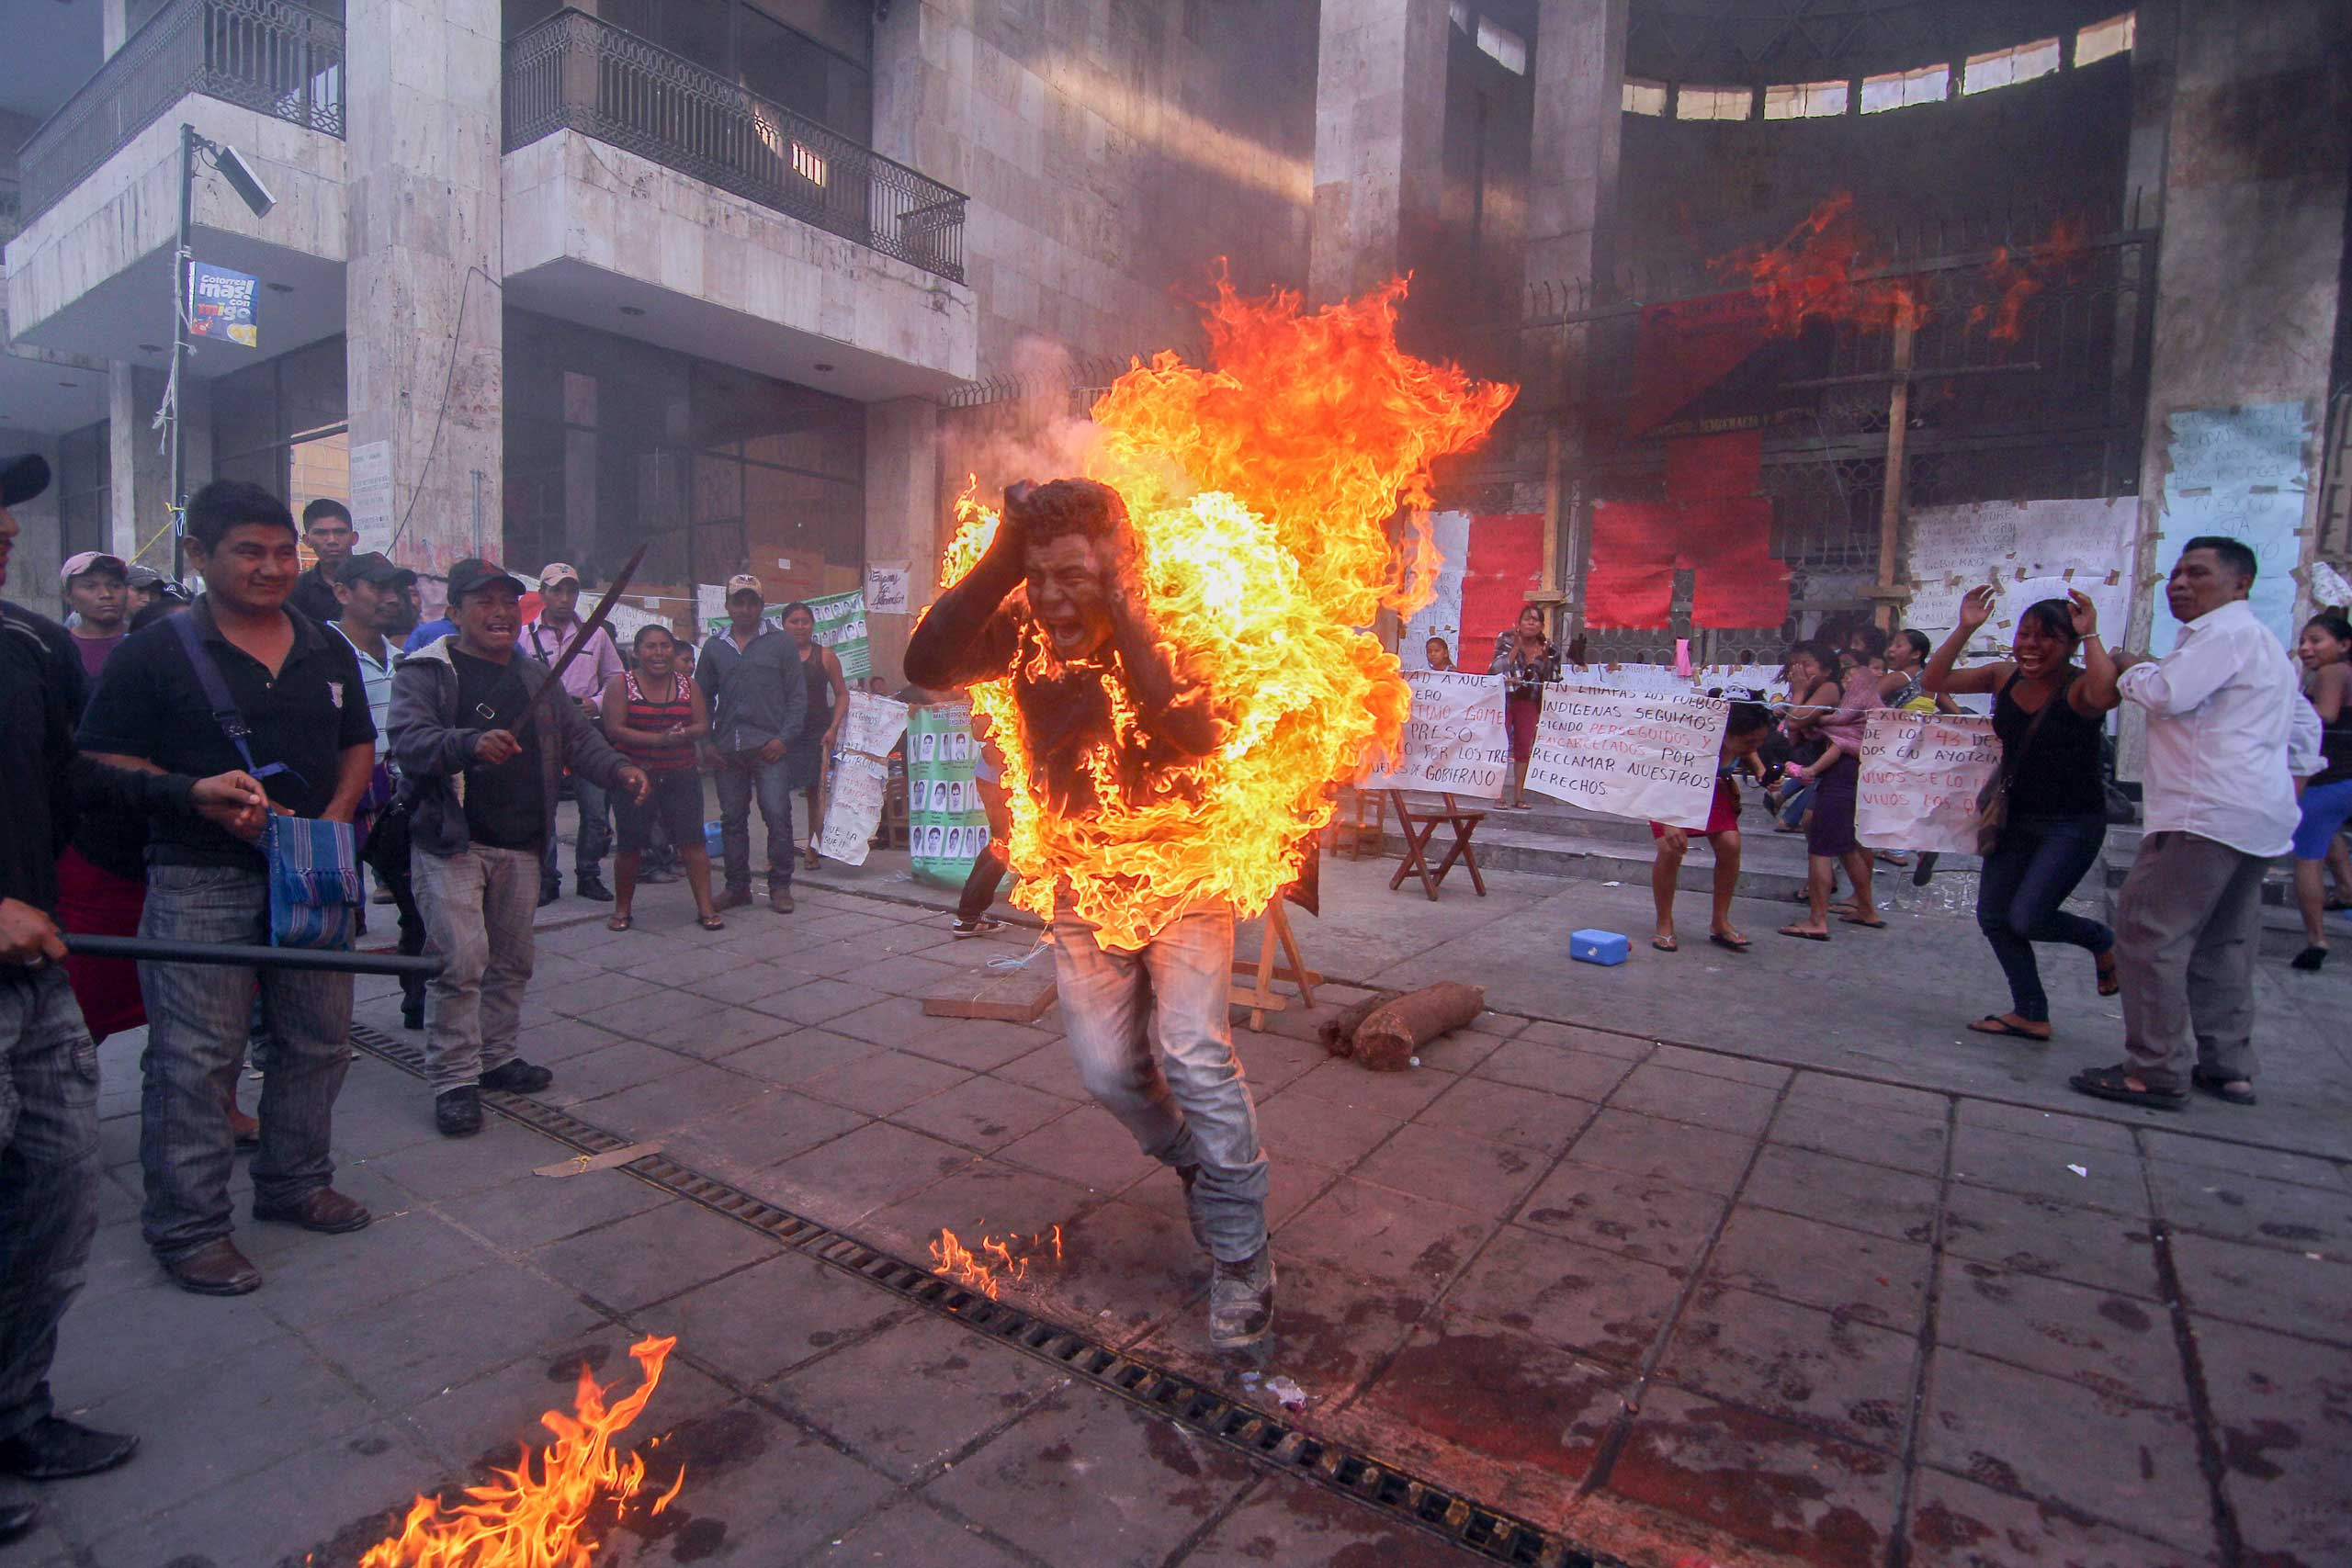 Mexico: Protests over indigenous rightsFarmer Agustin Gomez Perez, 21, runs engulfed in flames after he was lit on fire as a form of protest outside the Chiapas state legislature in Tuxtla Gutierrez, Mexico, Dec. 5, 2014. Perez was demanding the release of his father, indigenous leader Florentino Gomez Giron, who was arrested last year on charges stemming from a series of demonstrations in 2011 that turned violent.